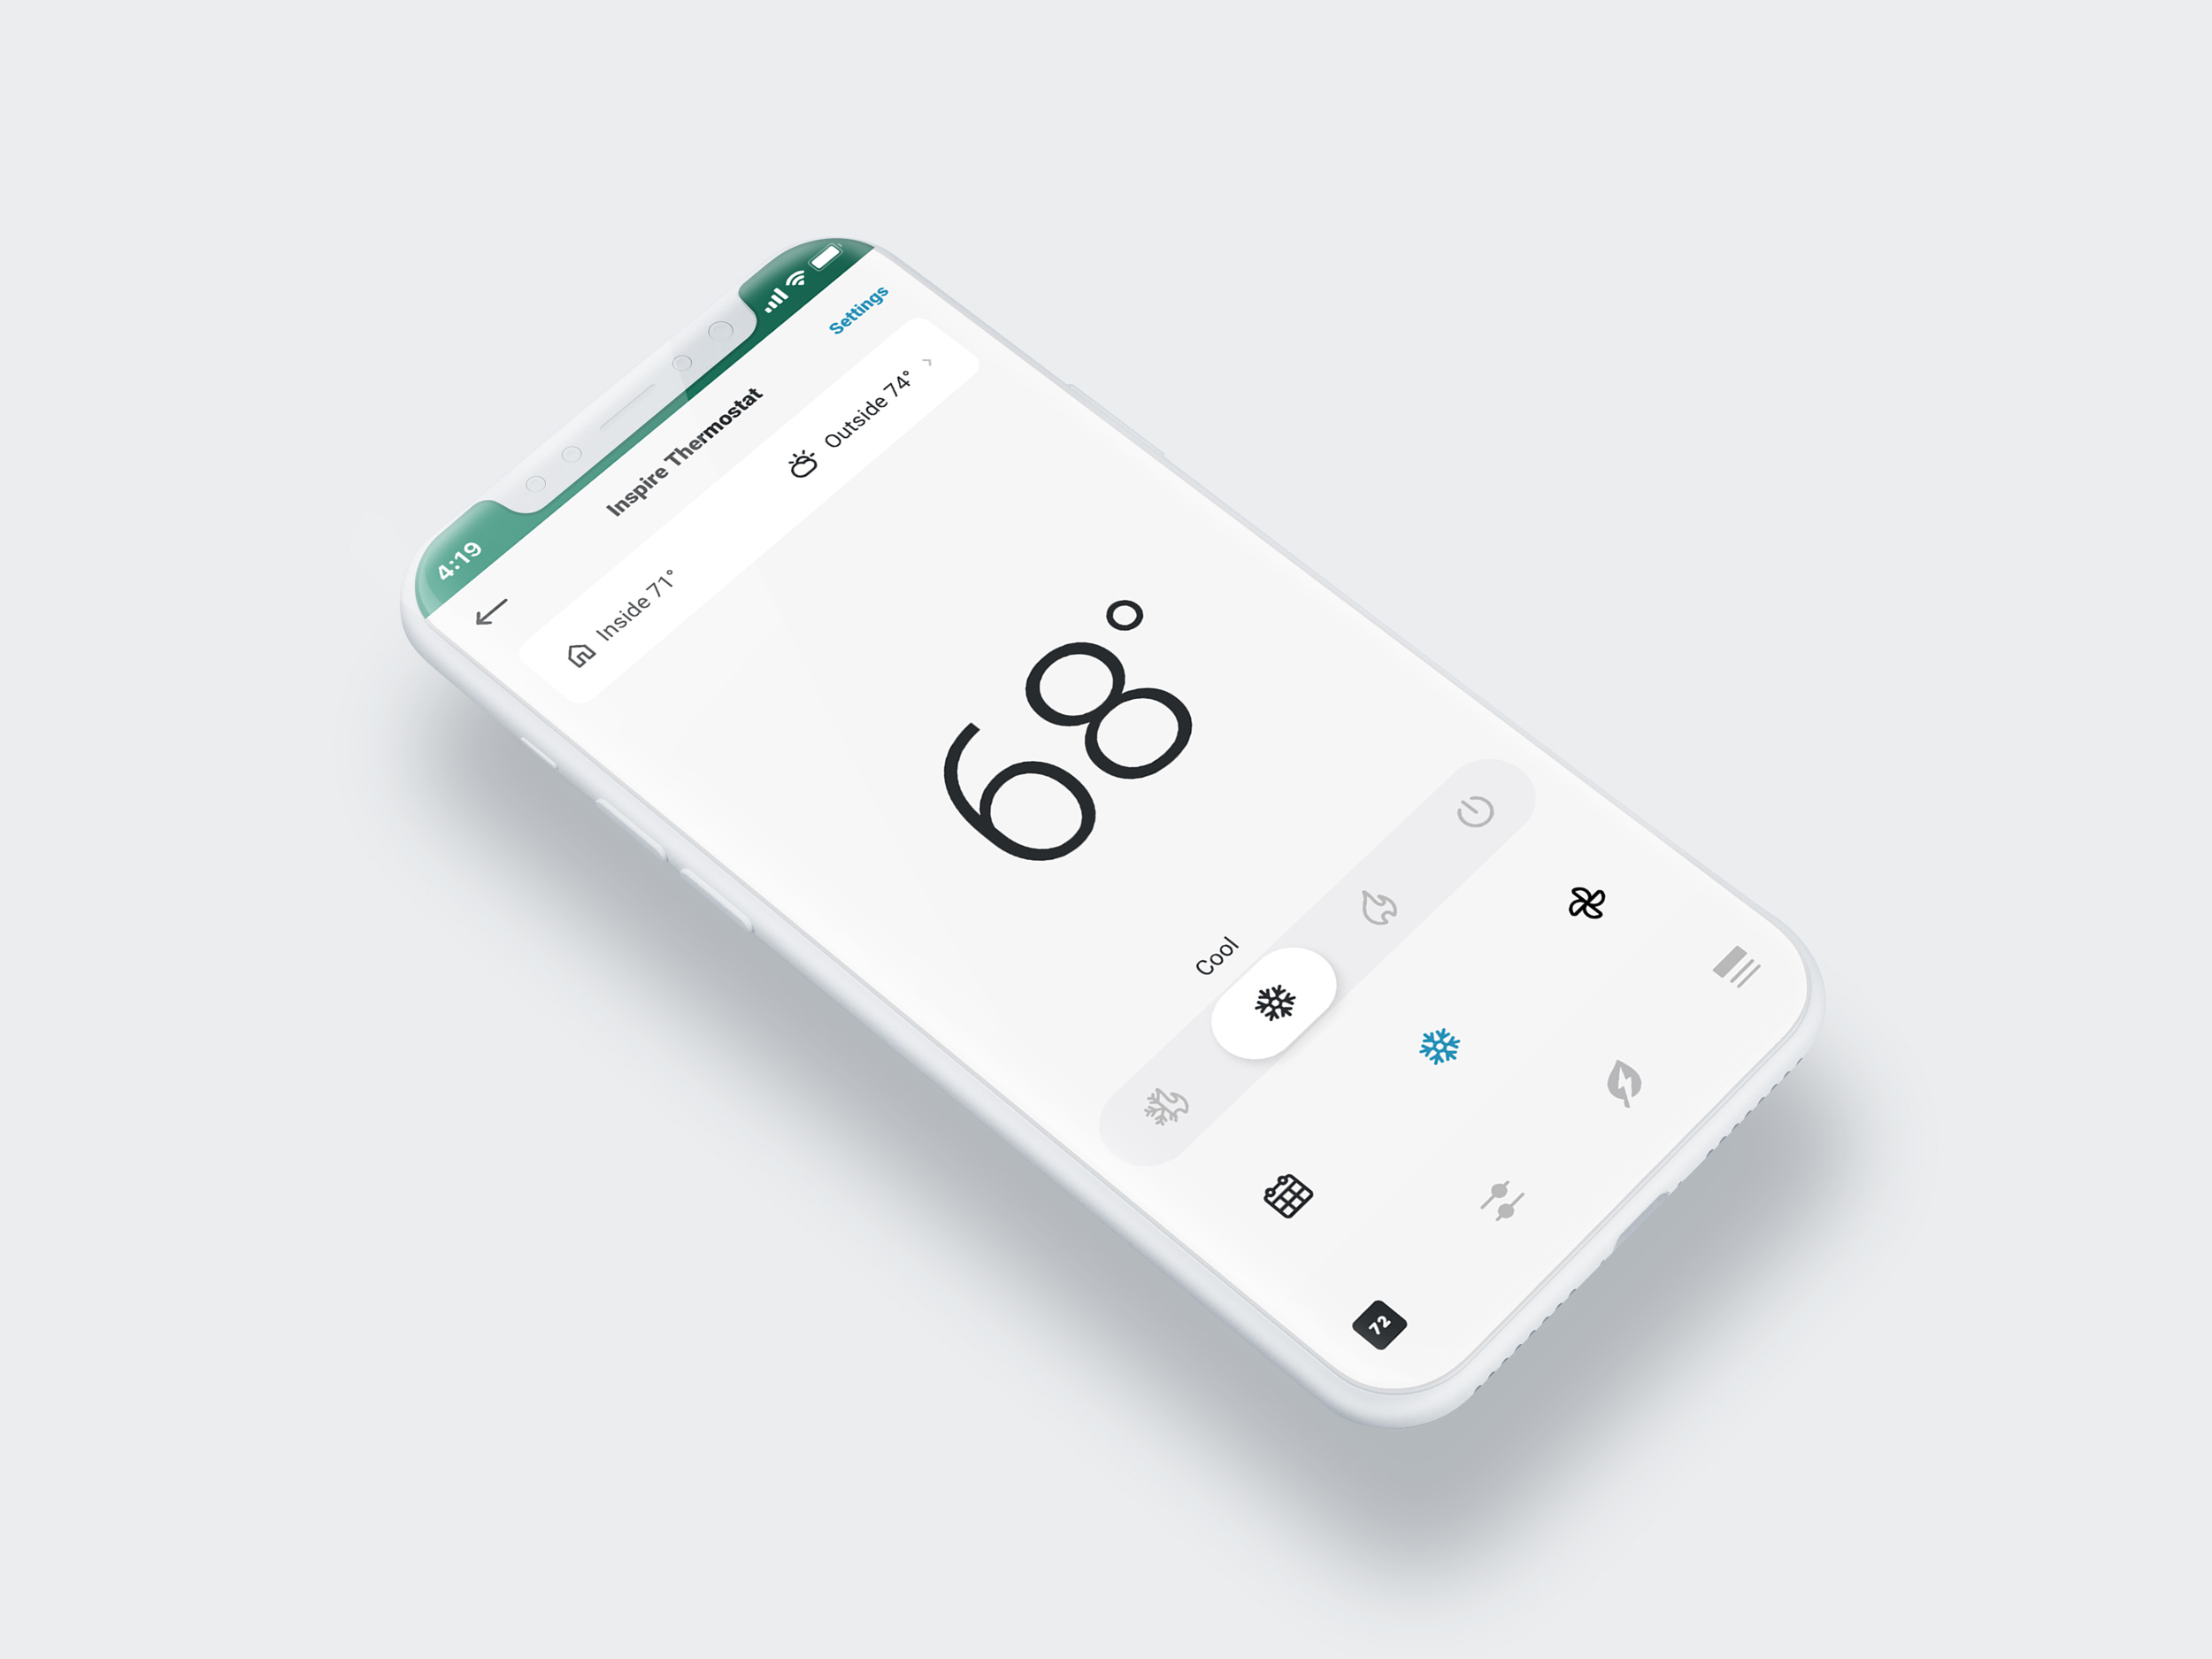 Product inspireapp temperature